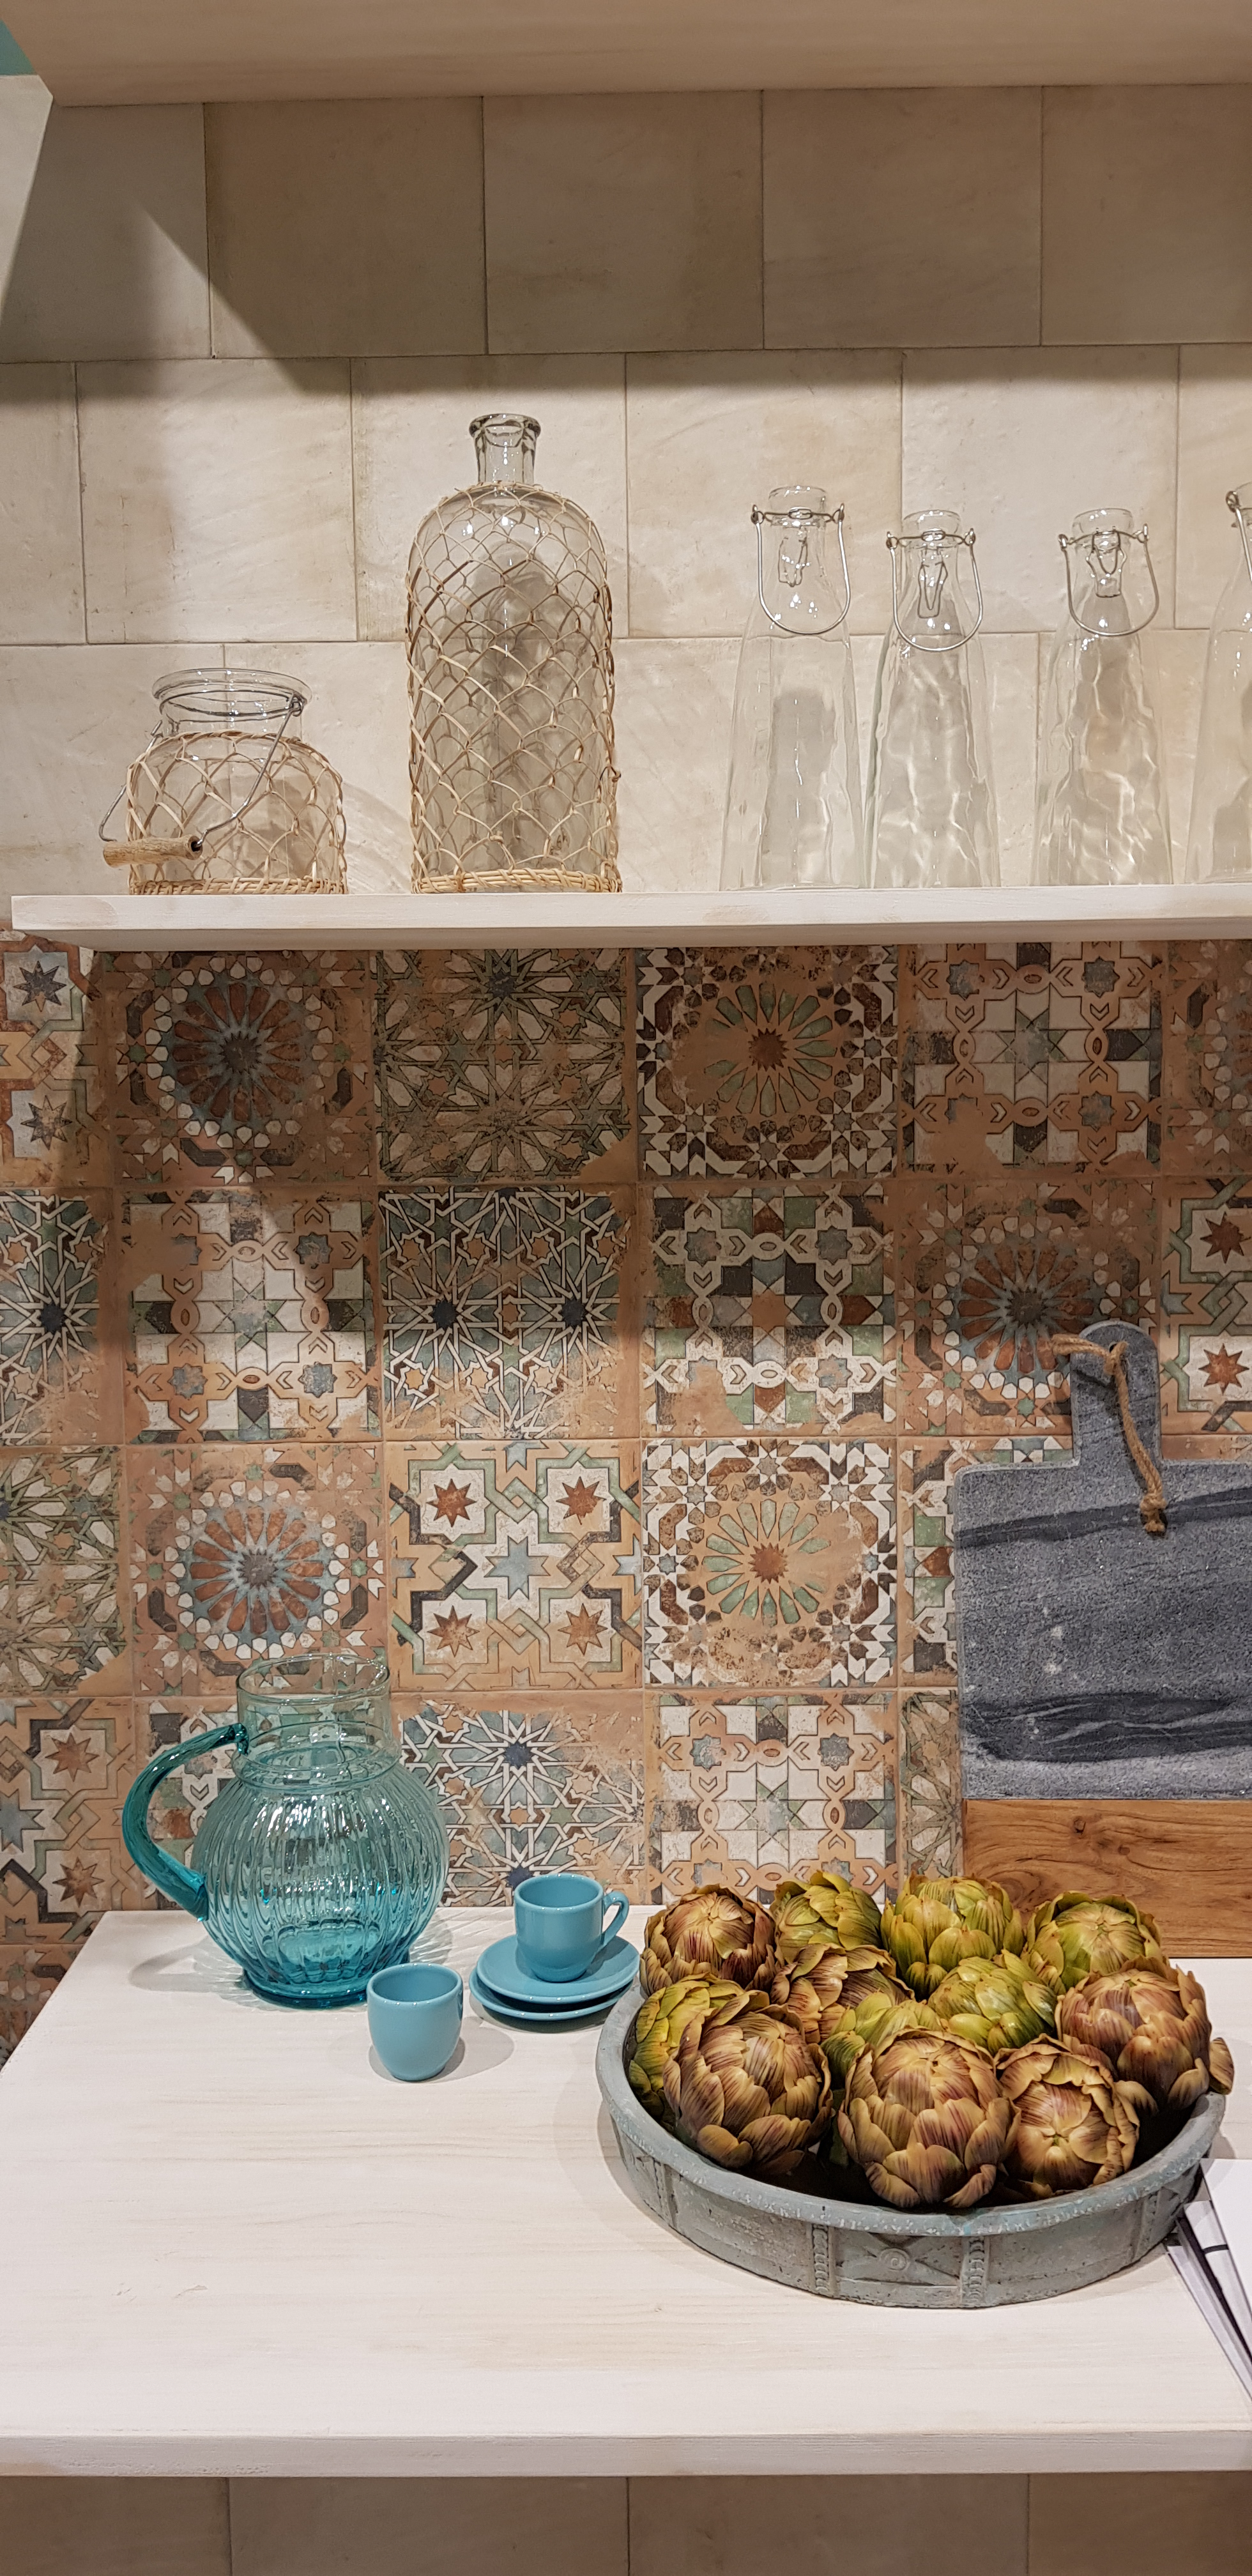 Forli by Mainzu Ceramica